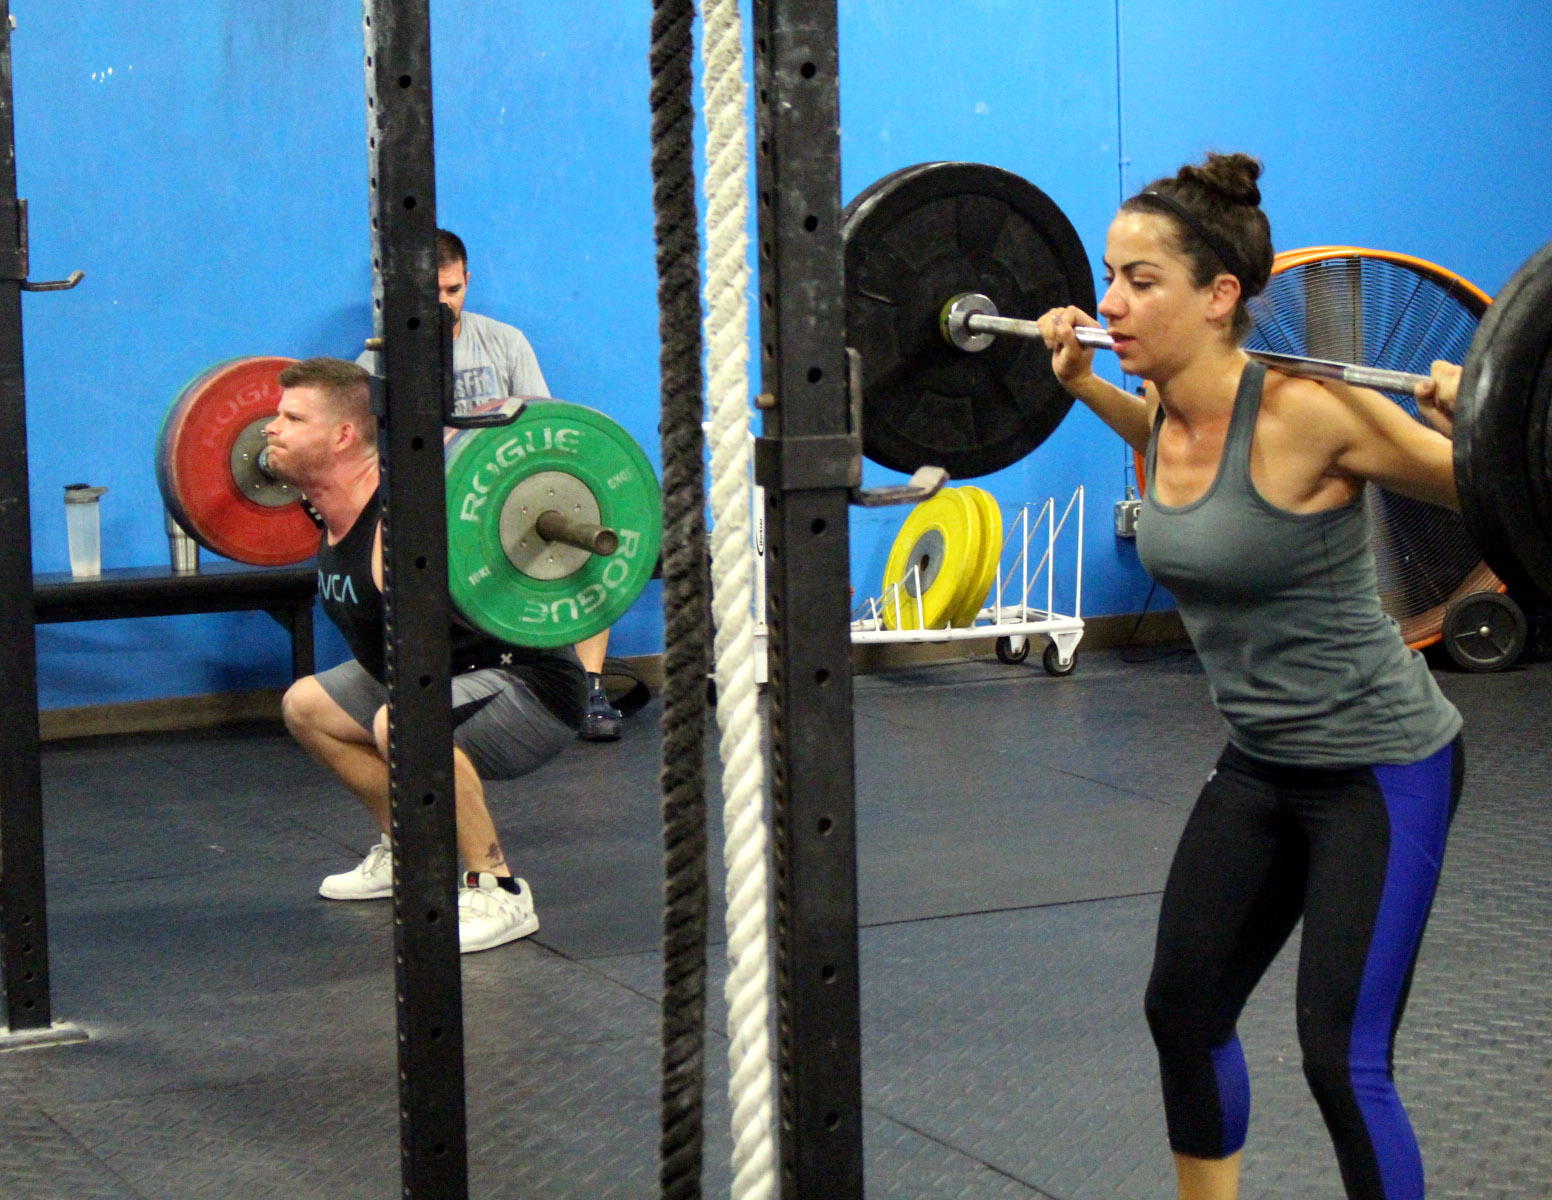 Keith & Ana doing back squats